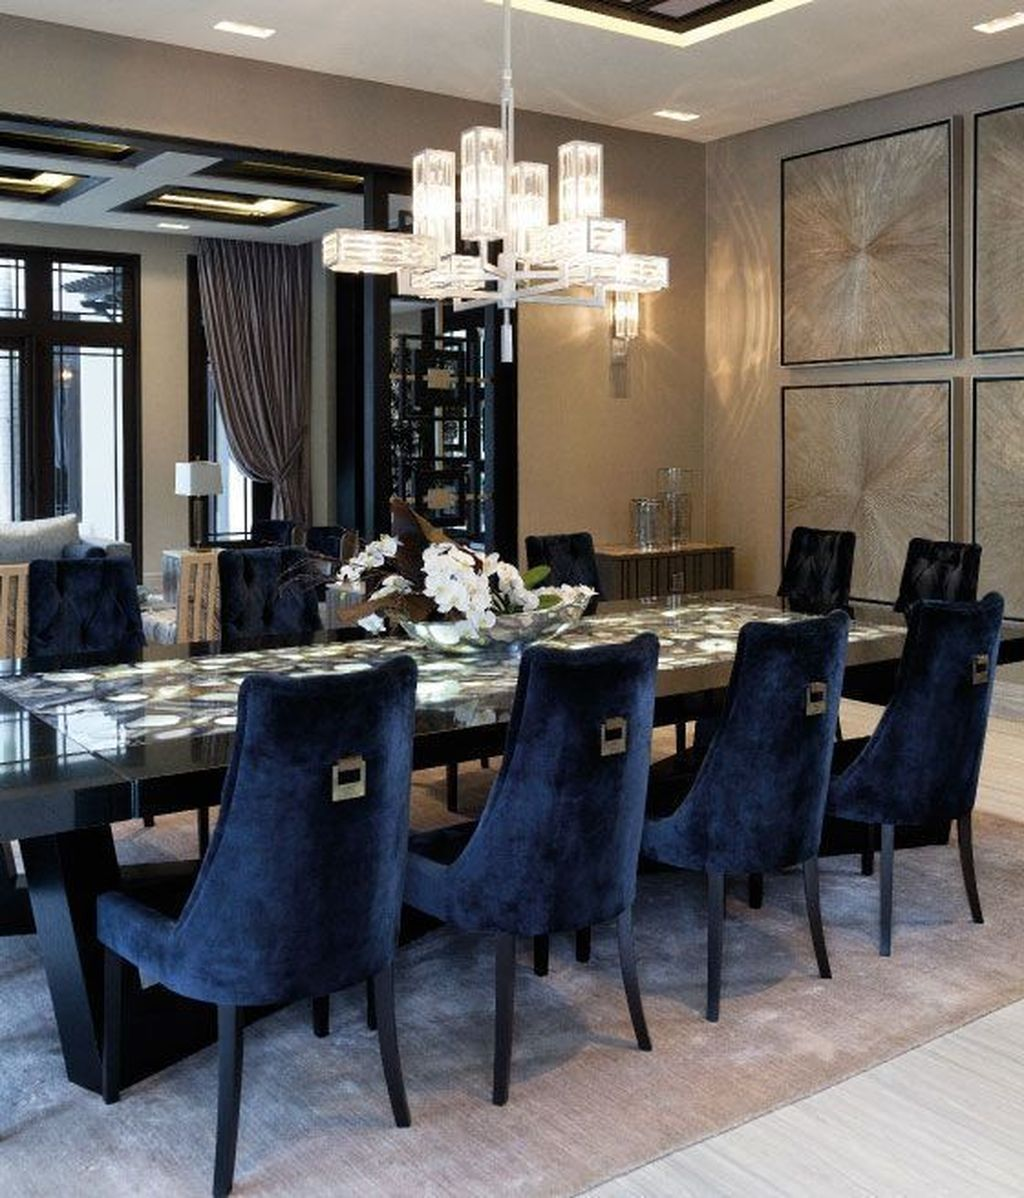 Admirable Dining Room Design Ideas 15